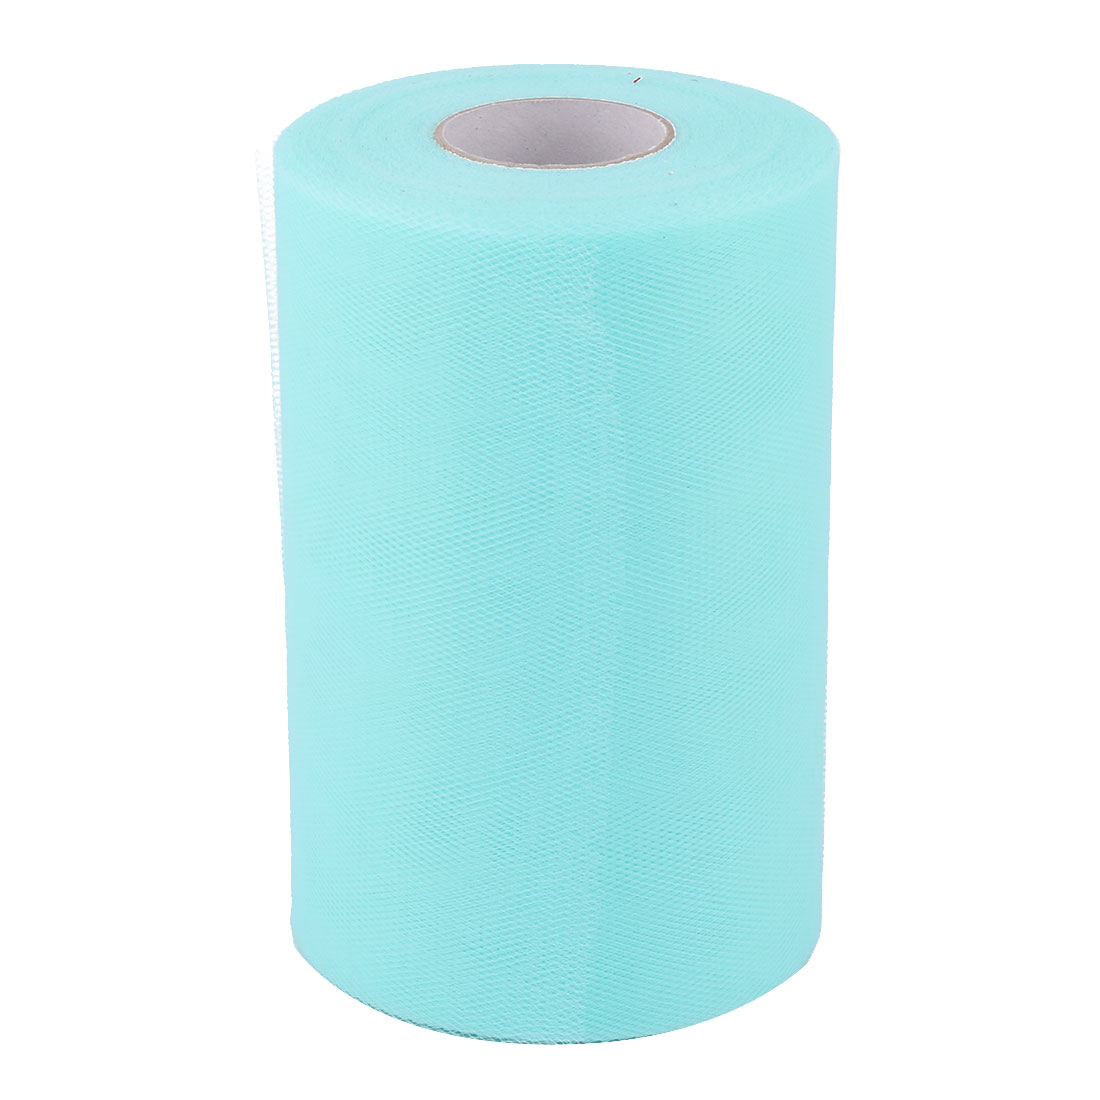 "6"" x 100 YD Tulle Roll Spool Wedding Gift Tutu Fabric Decoration Craft Cyan"